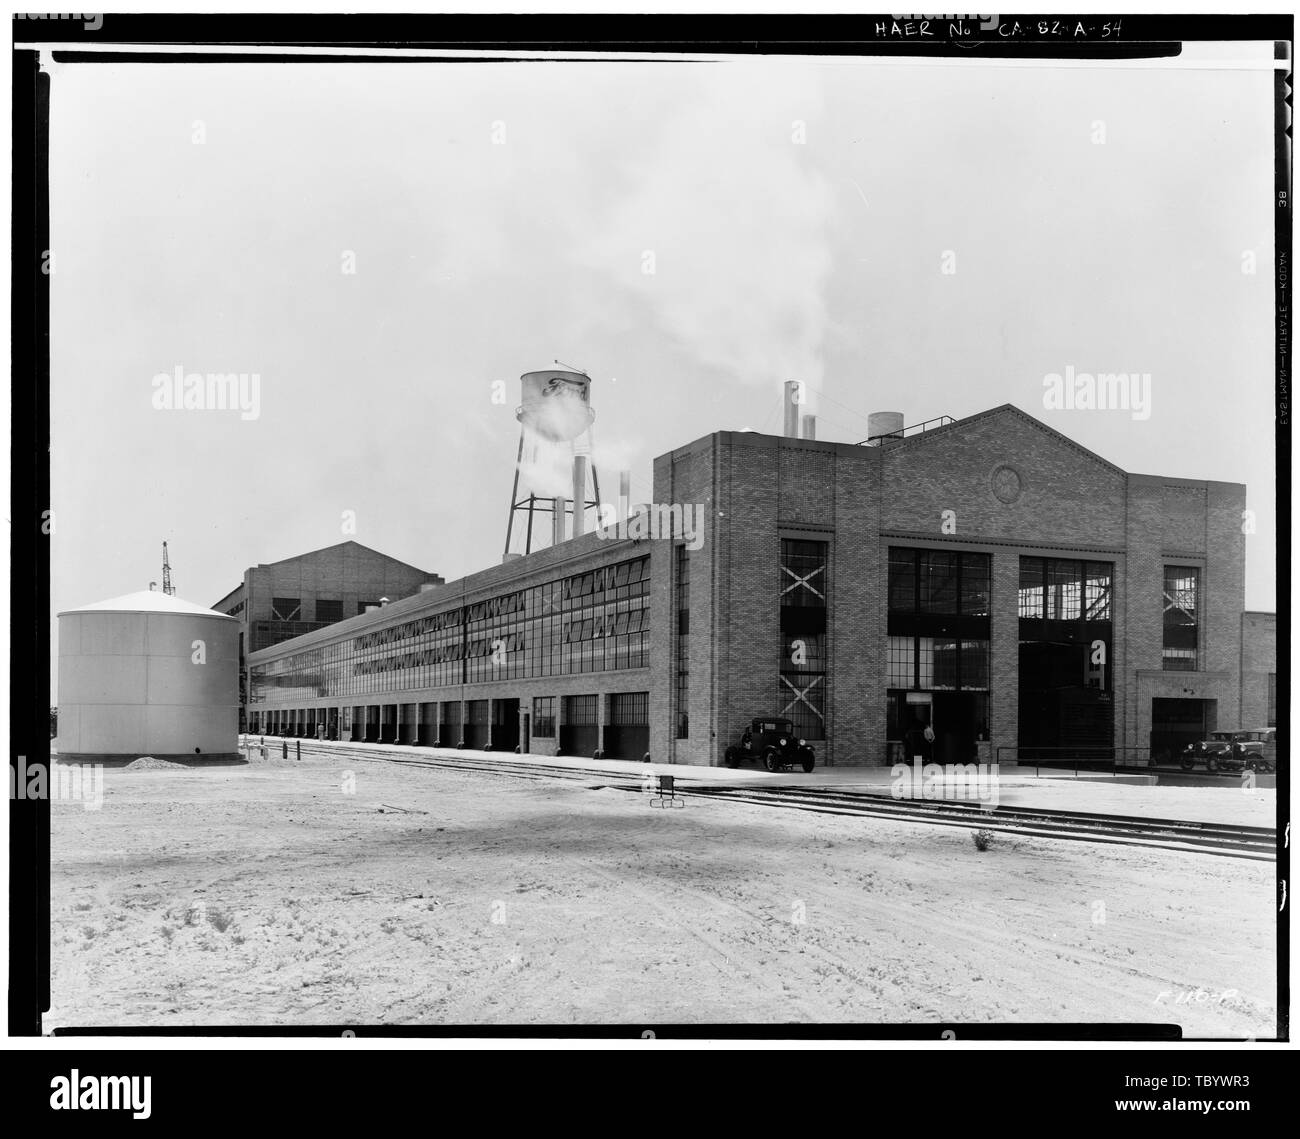 Neg. Nr. F110 P, Apr 24, 1931 EXTERIORPRESSED STAHLBAU, Nord- und Ostseite, LAGER IM HINTERGRUND, EISENBAHN SPUR VORNE, BONDERITE TANK LINKS Ford Motor Company Long Beach Montagewerk, Assembly Building, 700 Henry Ford Avenue, Long Beach, Los Angeles County, CA Stockbild